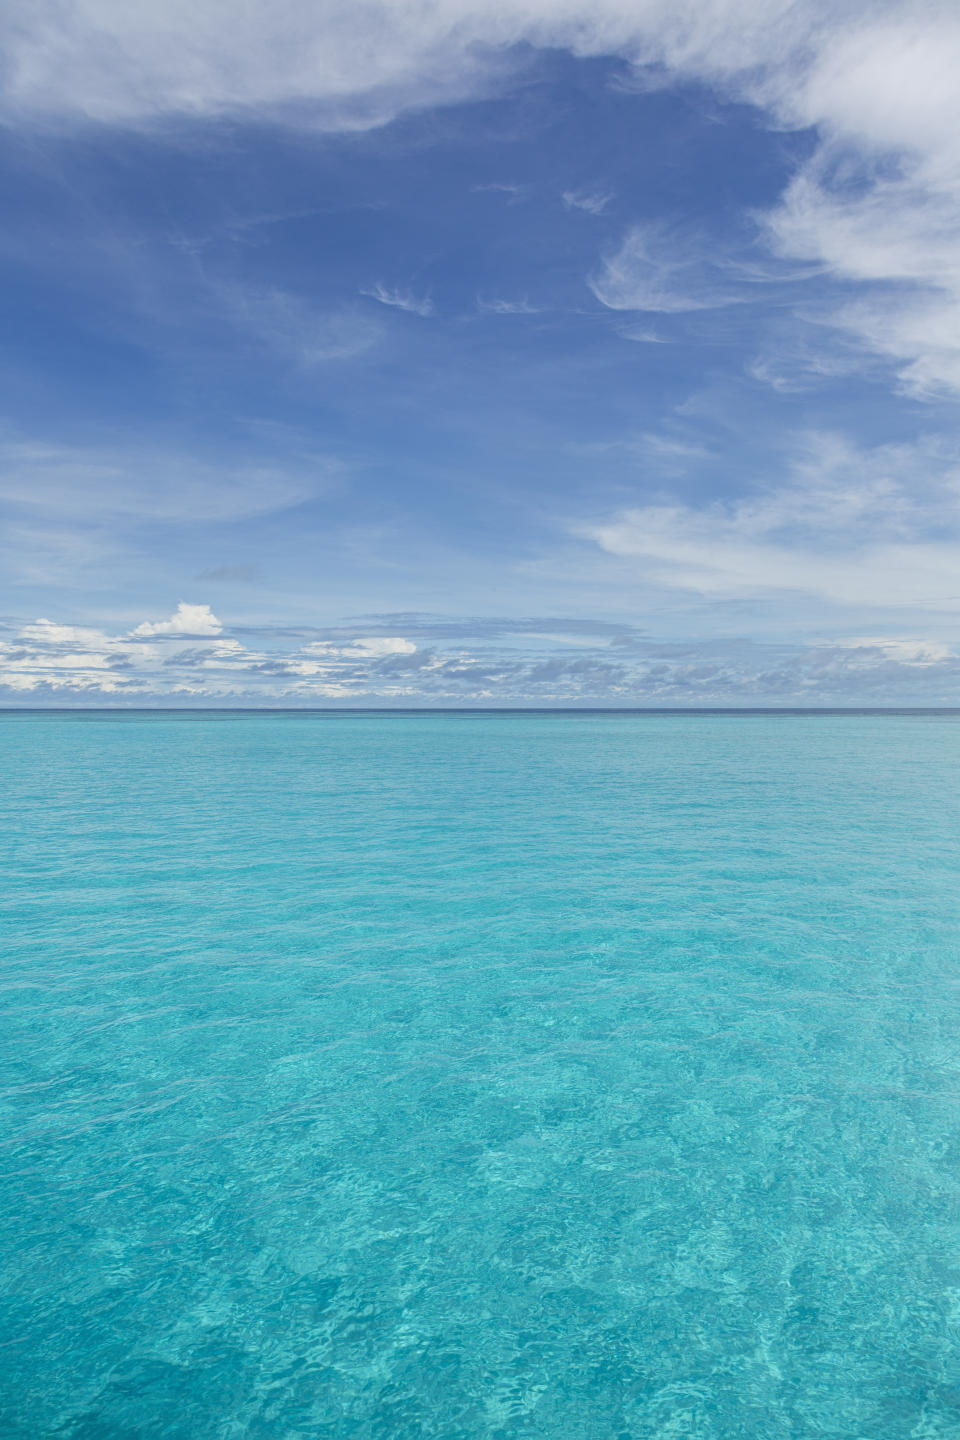 View of clear tropical water of Indian ocean with blue sky and clouds off coast of Baa Atoll, Maldives